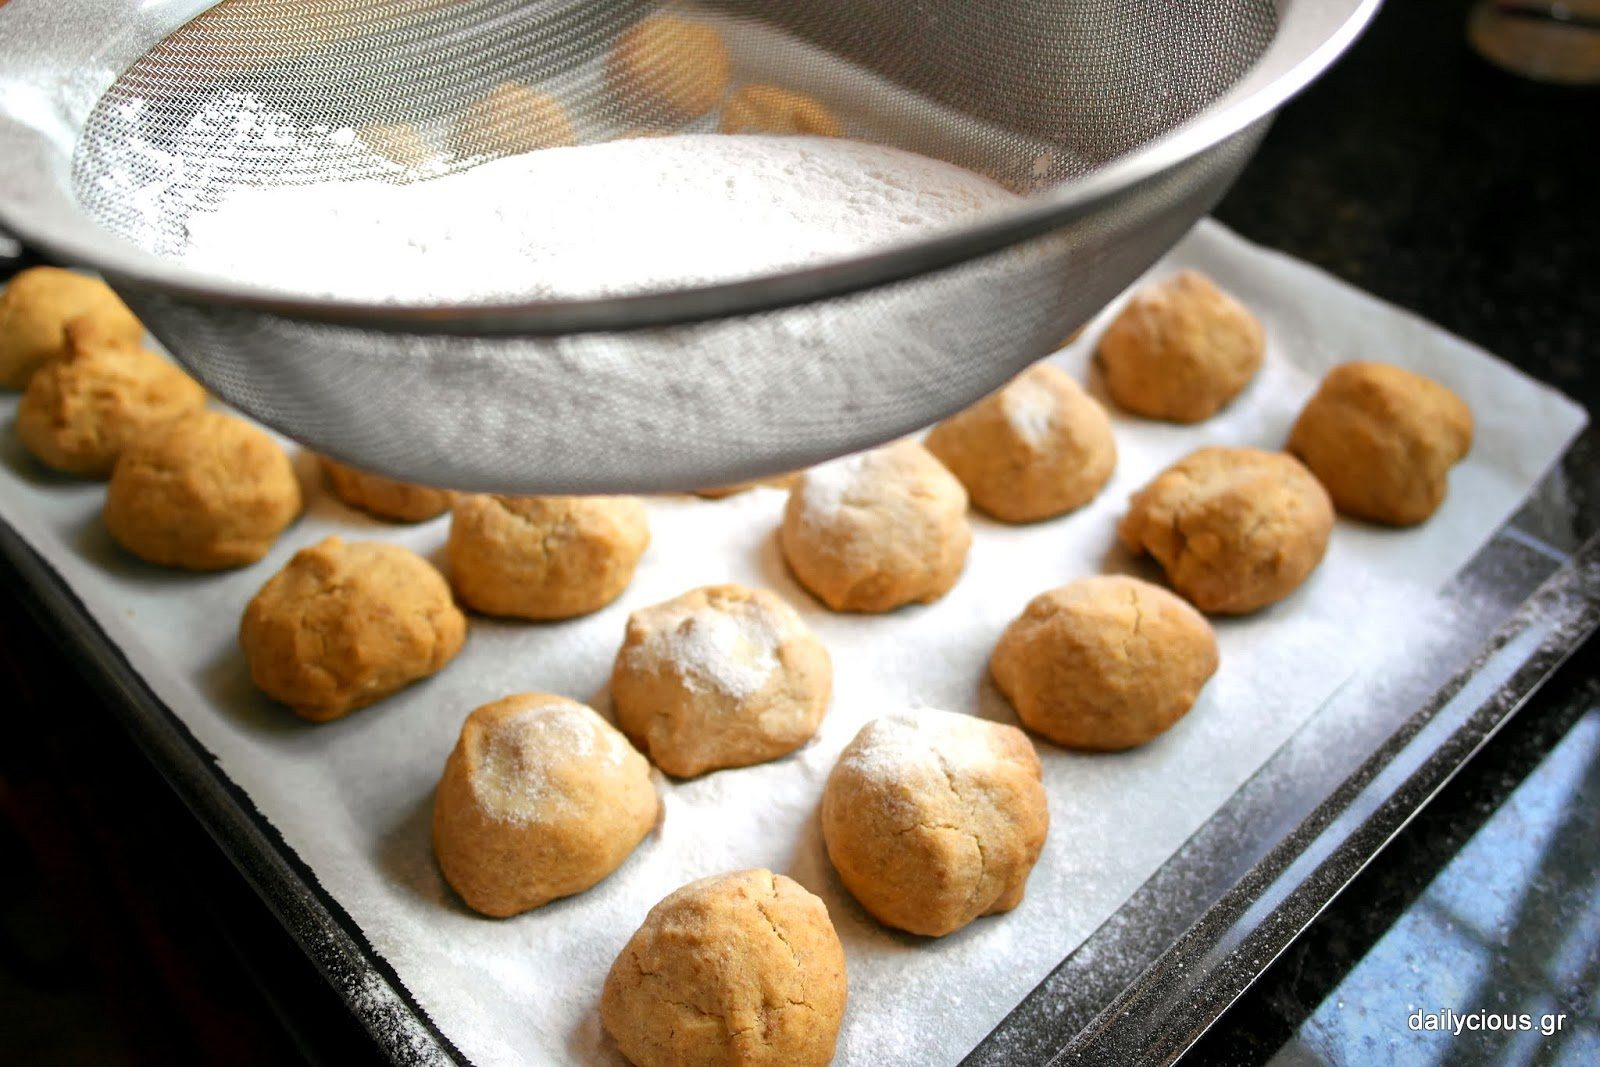 Preparing Greek Kourabiedes